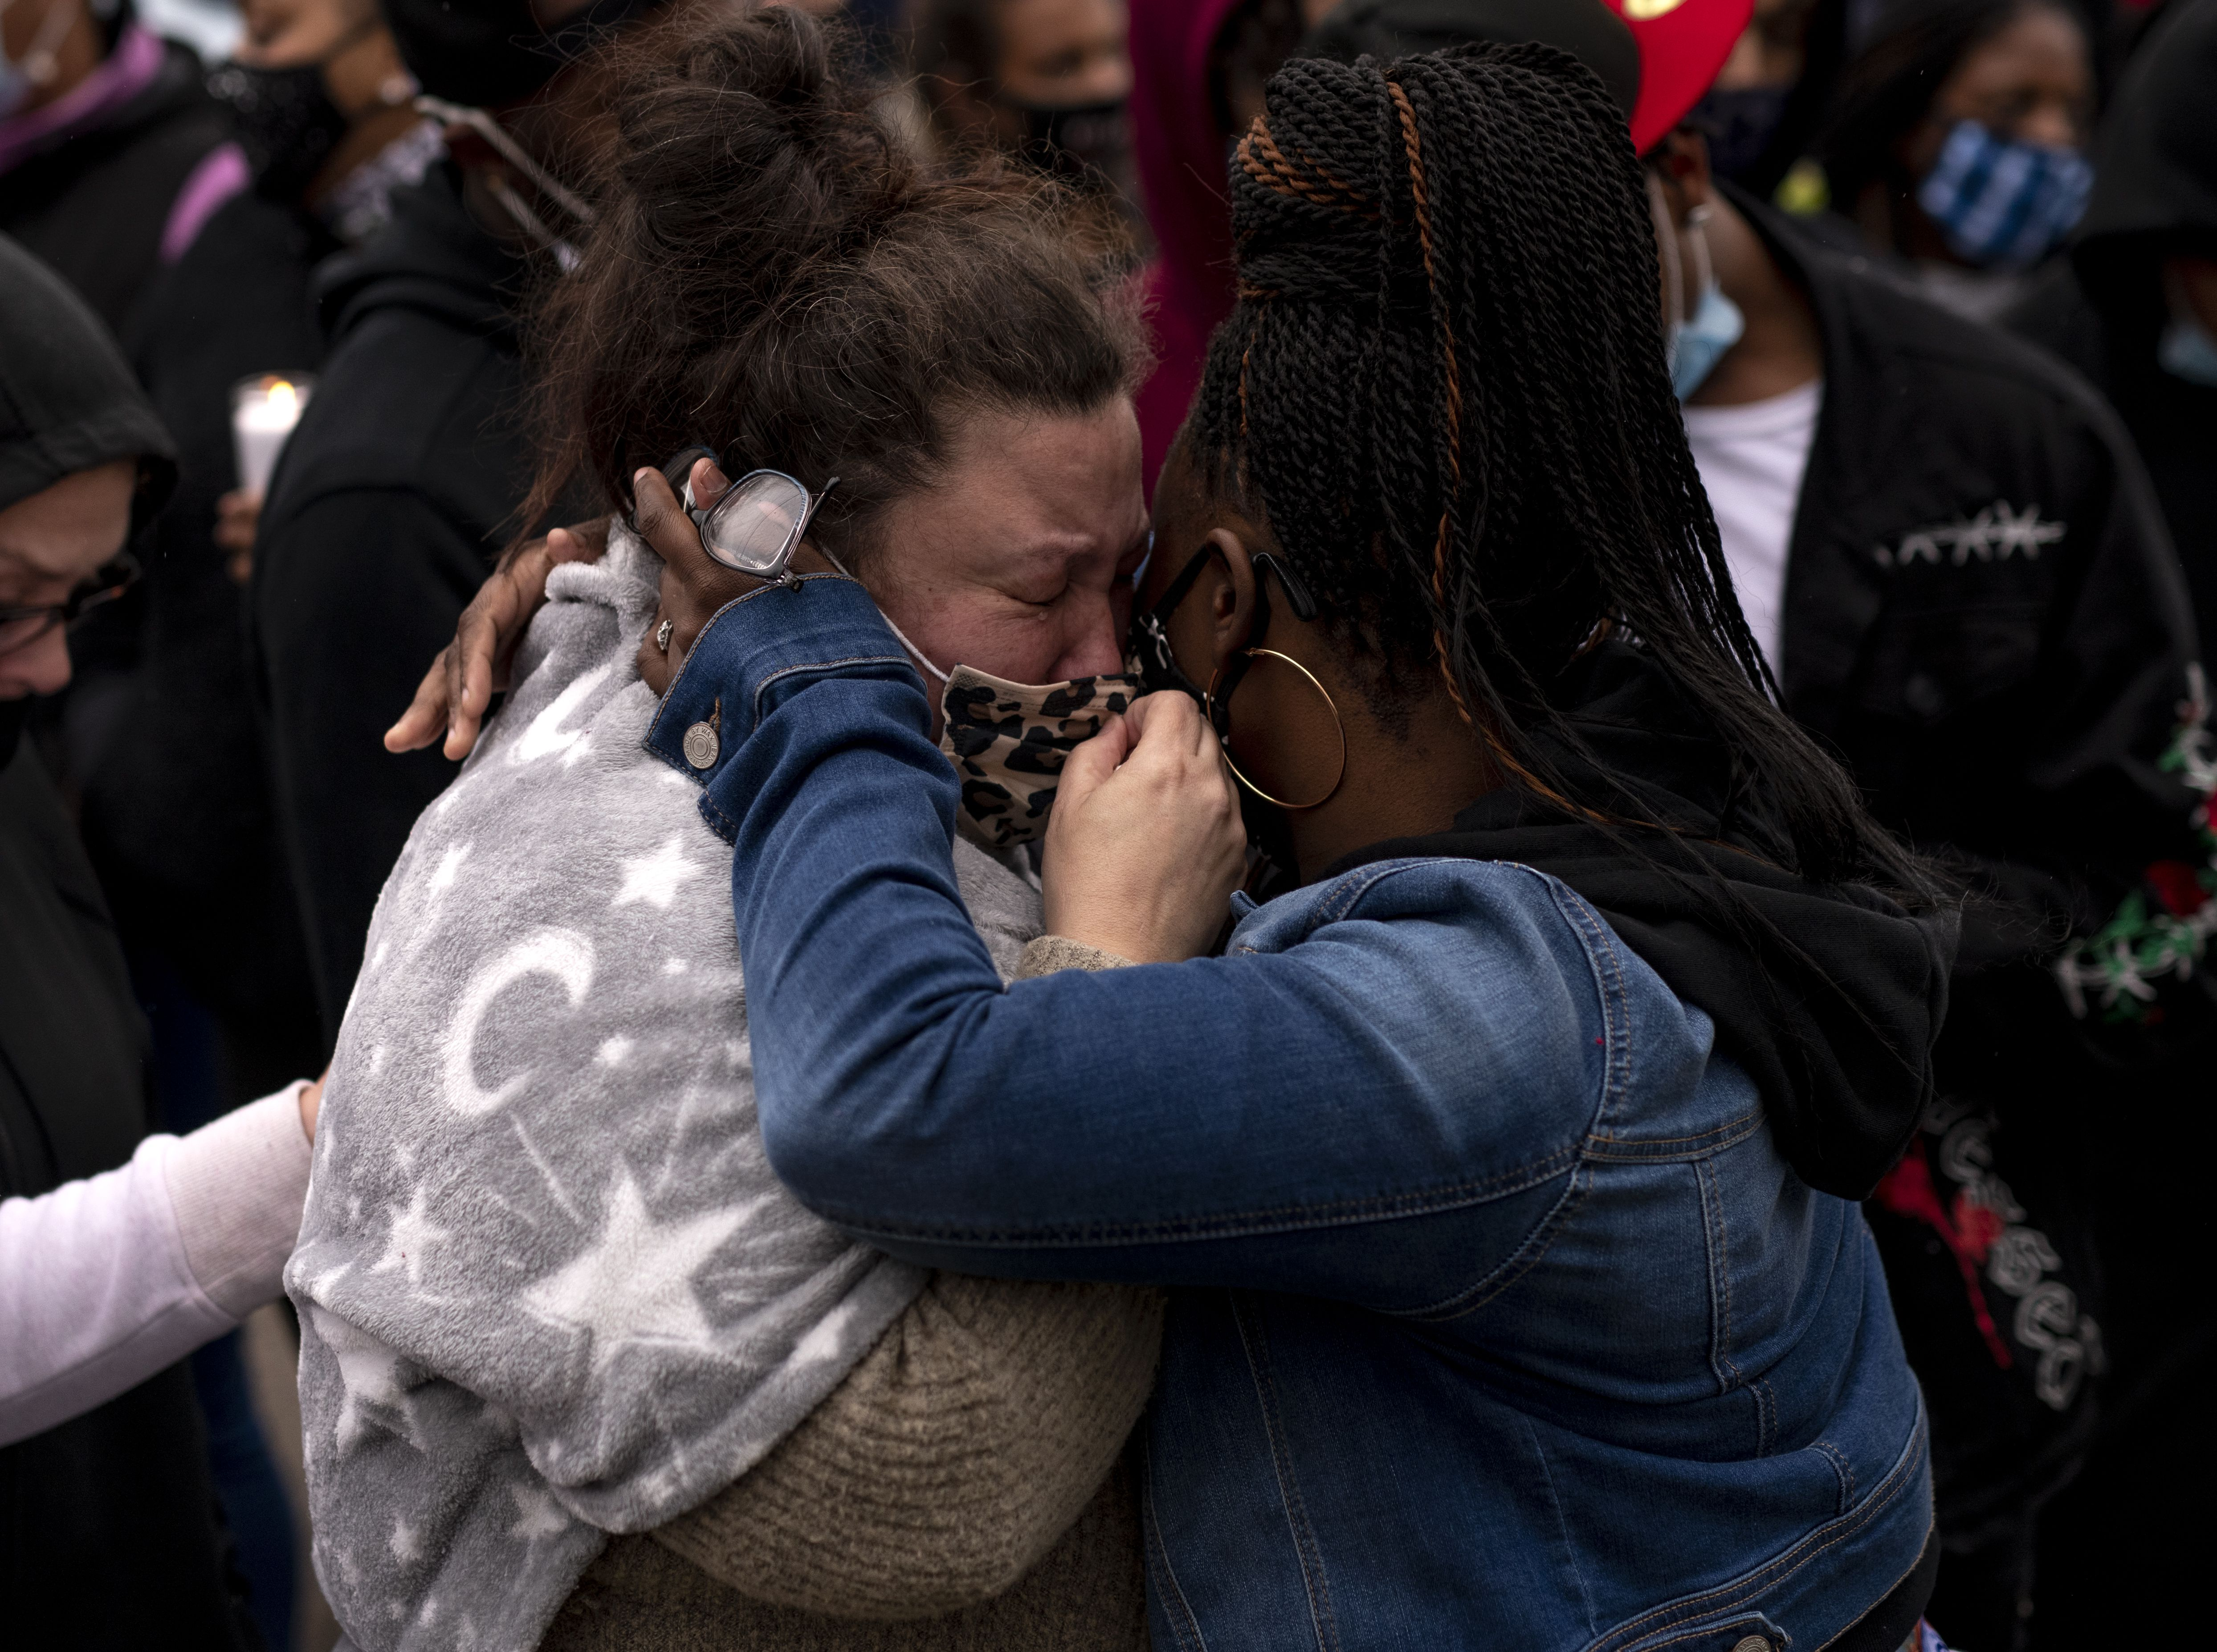 Katie Wright (L), the mother of Daunte Wright, is embraced during a vigil for her son on April 12, 2021 in Brooklyn Center, Minnesota.